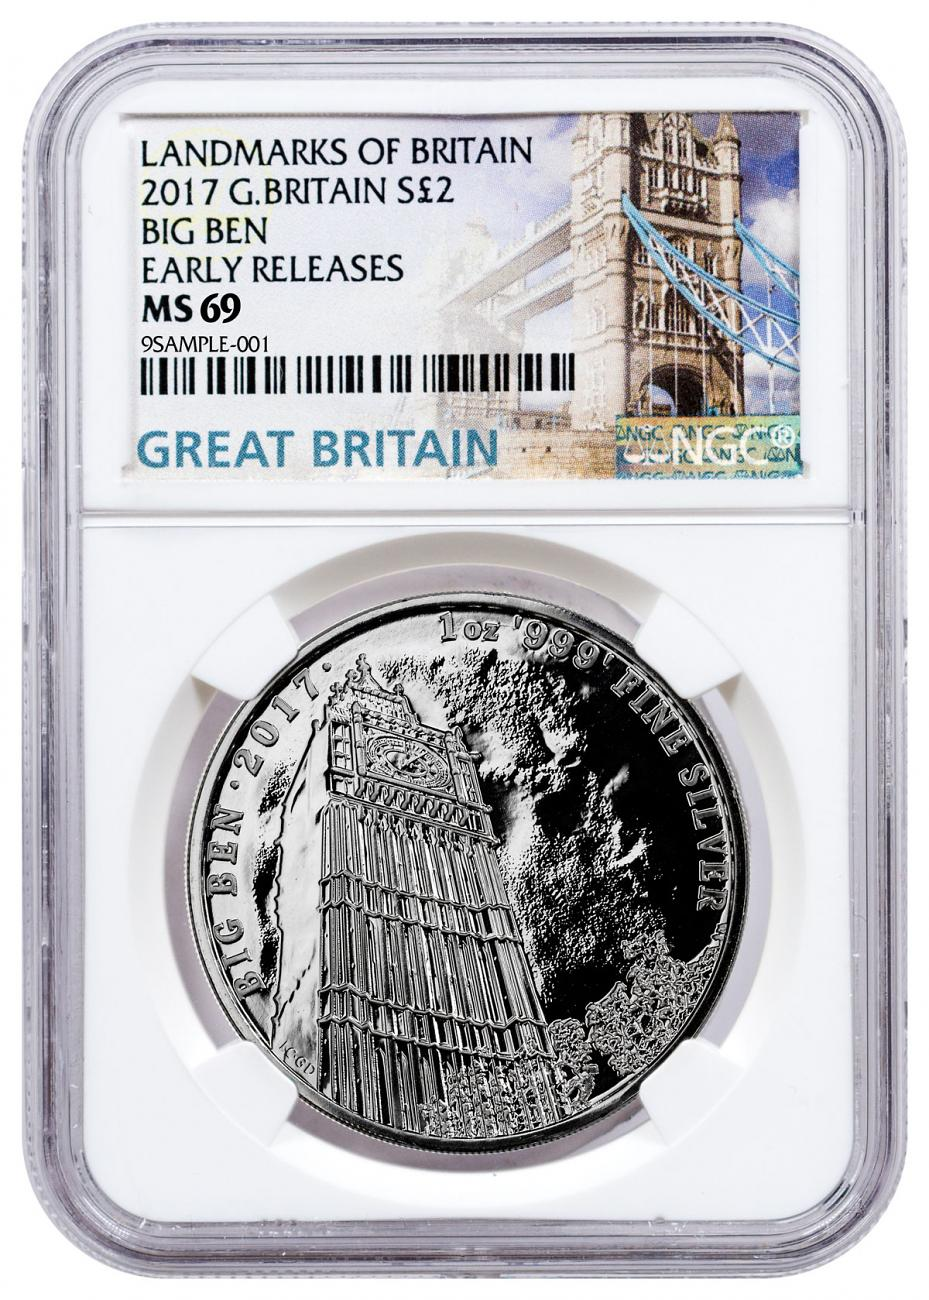 2017 Great Britain Landmarks of Britain - Big Ben 1 oz Silver £2 Coin NGC MS69 ER Exclusive Tower Bridge Label